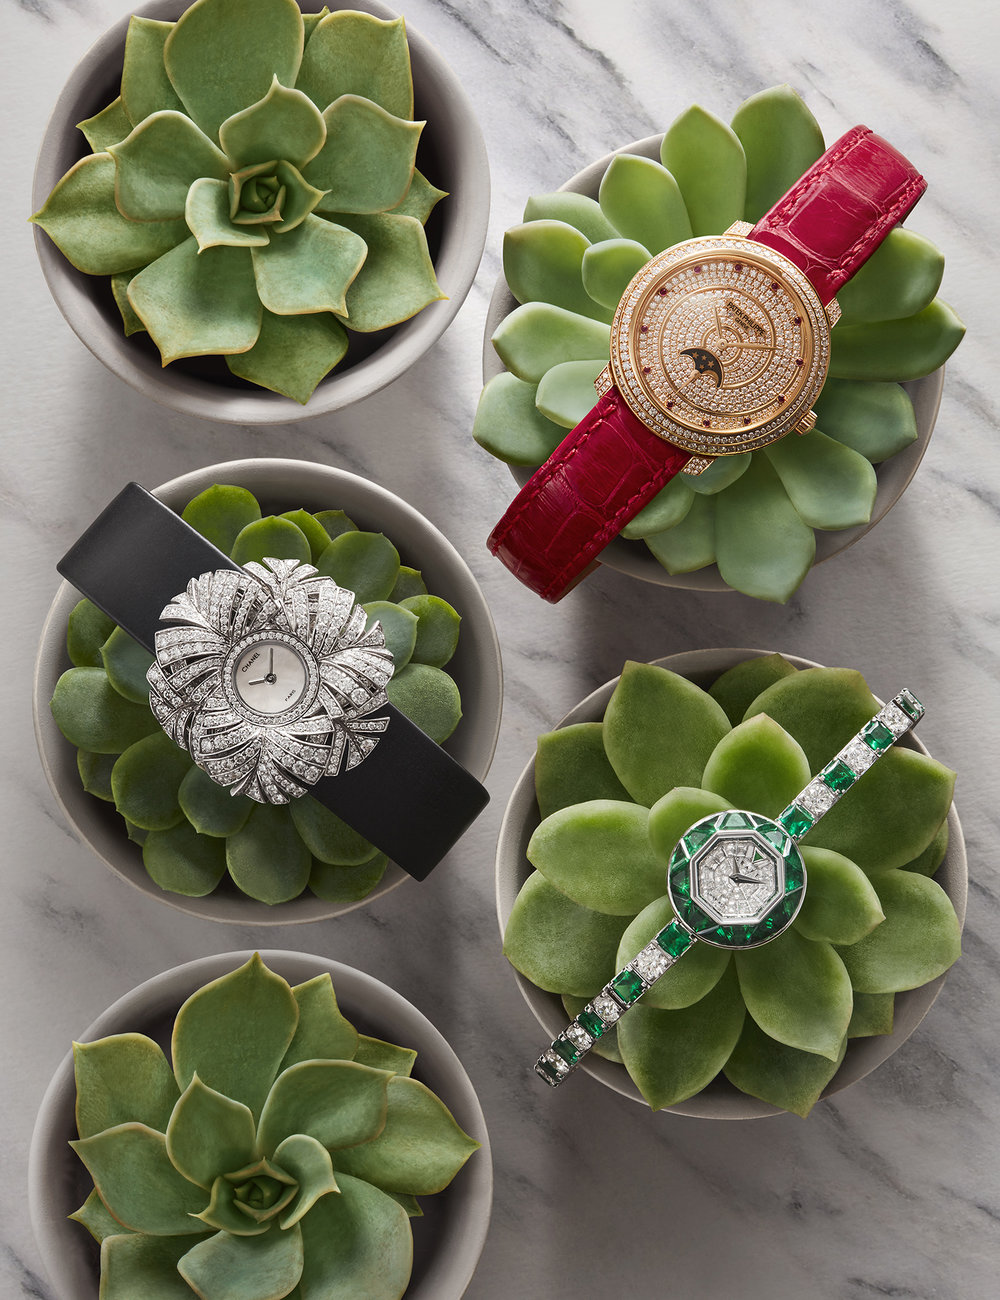 watch-photographer-london-luxury-watches-still-life-product-photography-cacti-succulents-plants-product-photographer-1.jpg